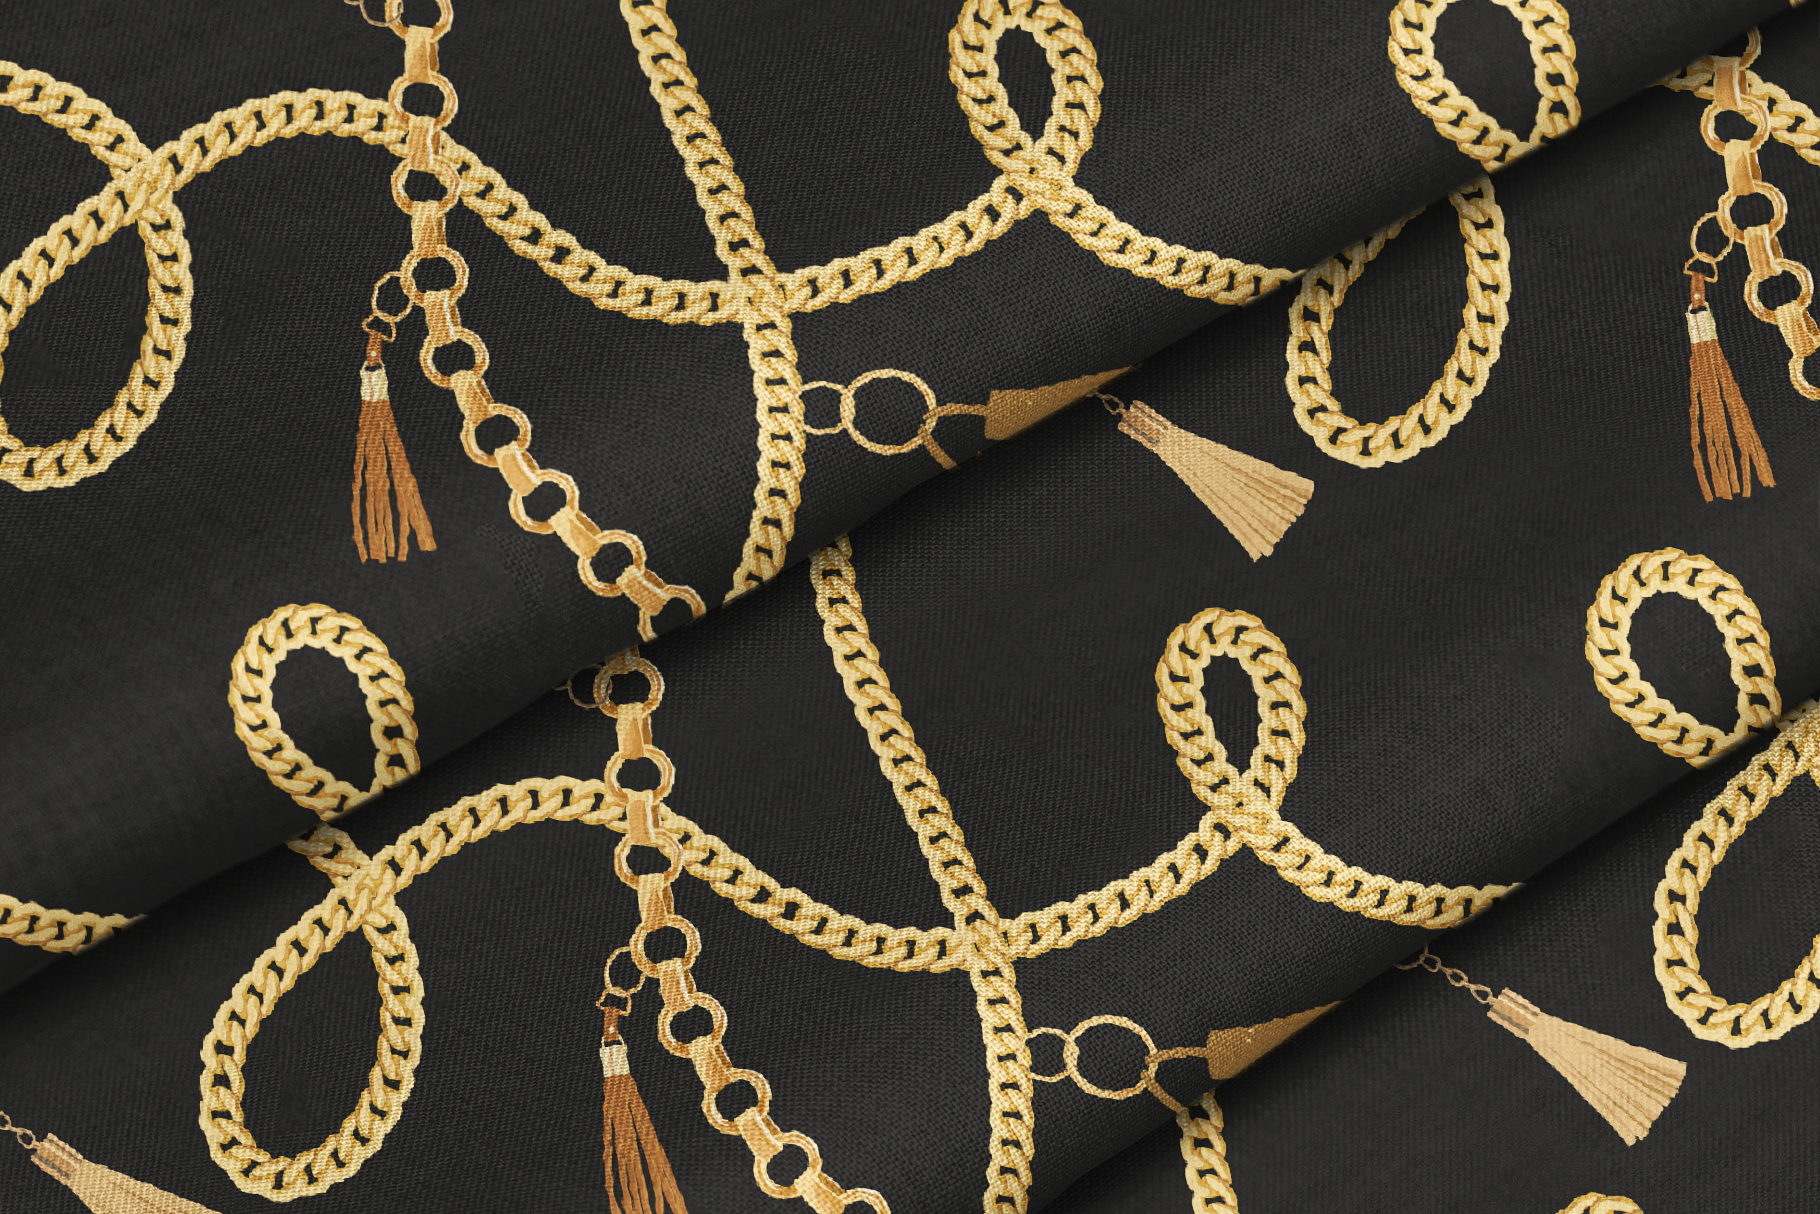 Chains and Belts Seamless Patterns. Set 1 example image 4